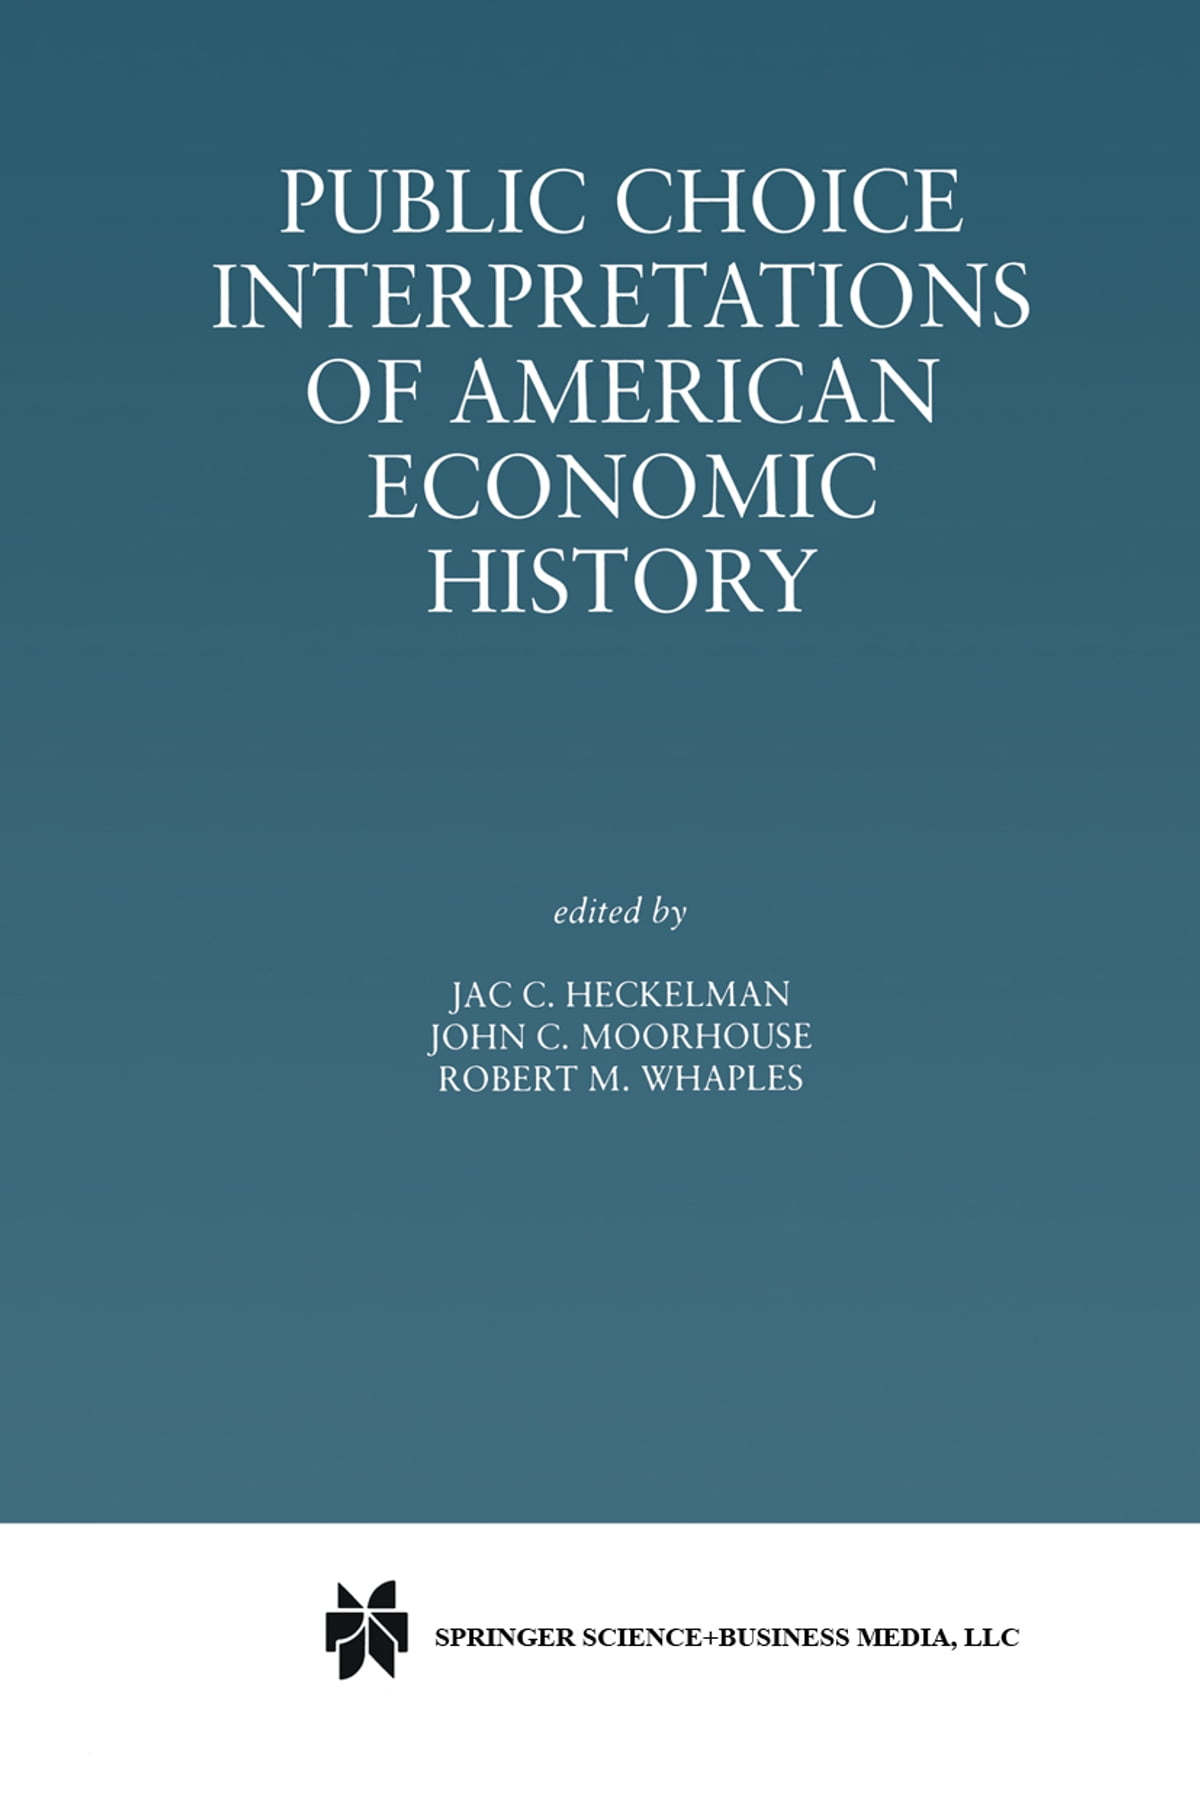 Public Choice Interpretations of American Economic History eBook by Jac. C.  Heckelman - 9781461545736 | Rakuten Kobo